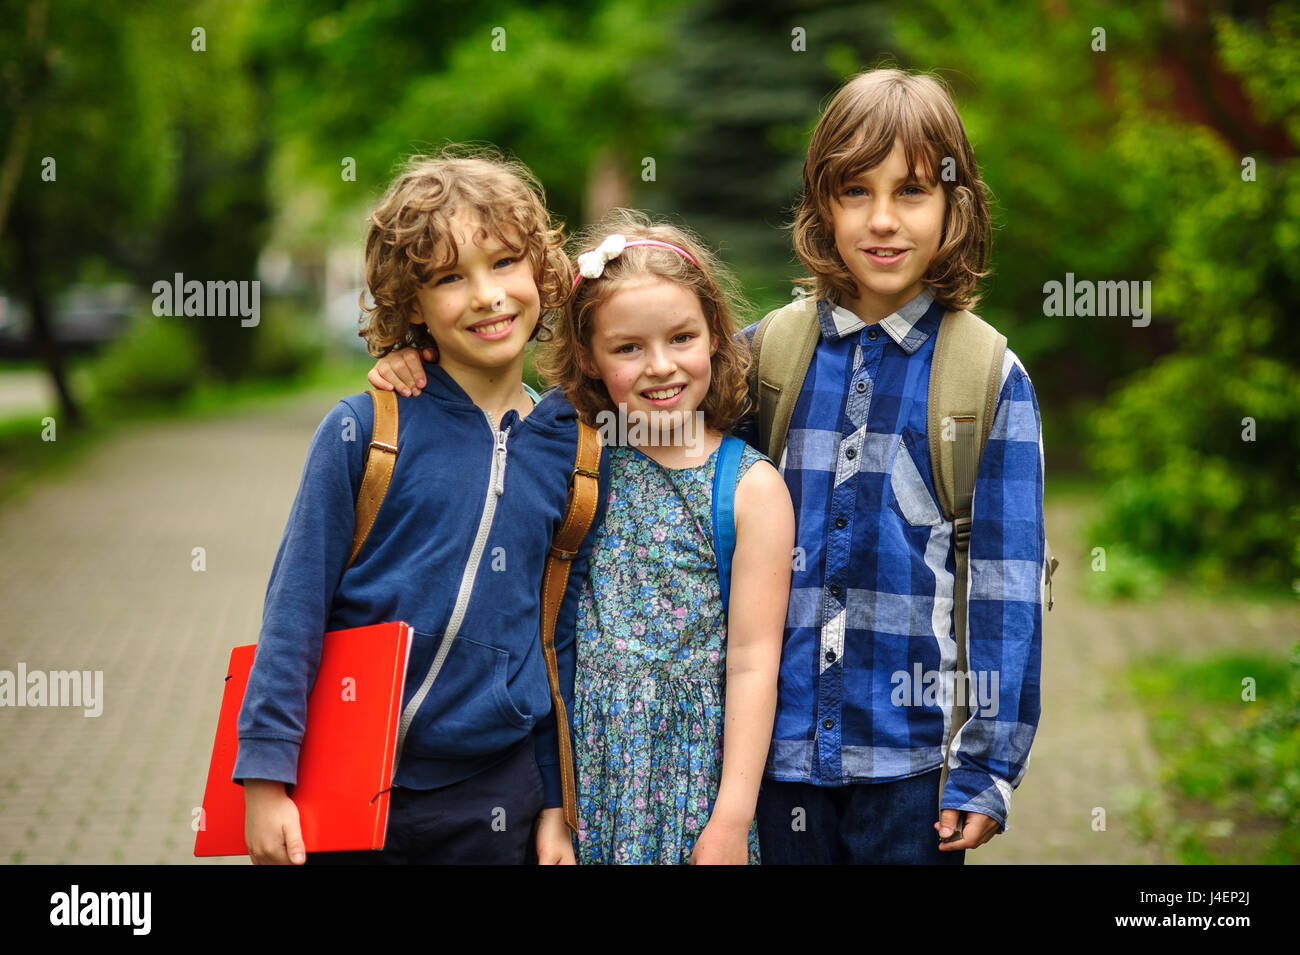 Three little school students, two boys and the girl, stand in an embrace on the schoolyard. Friends smile. School - Stock Image